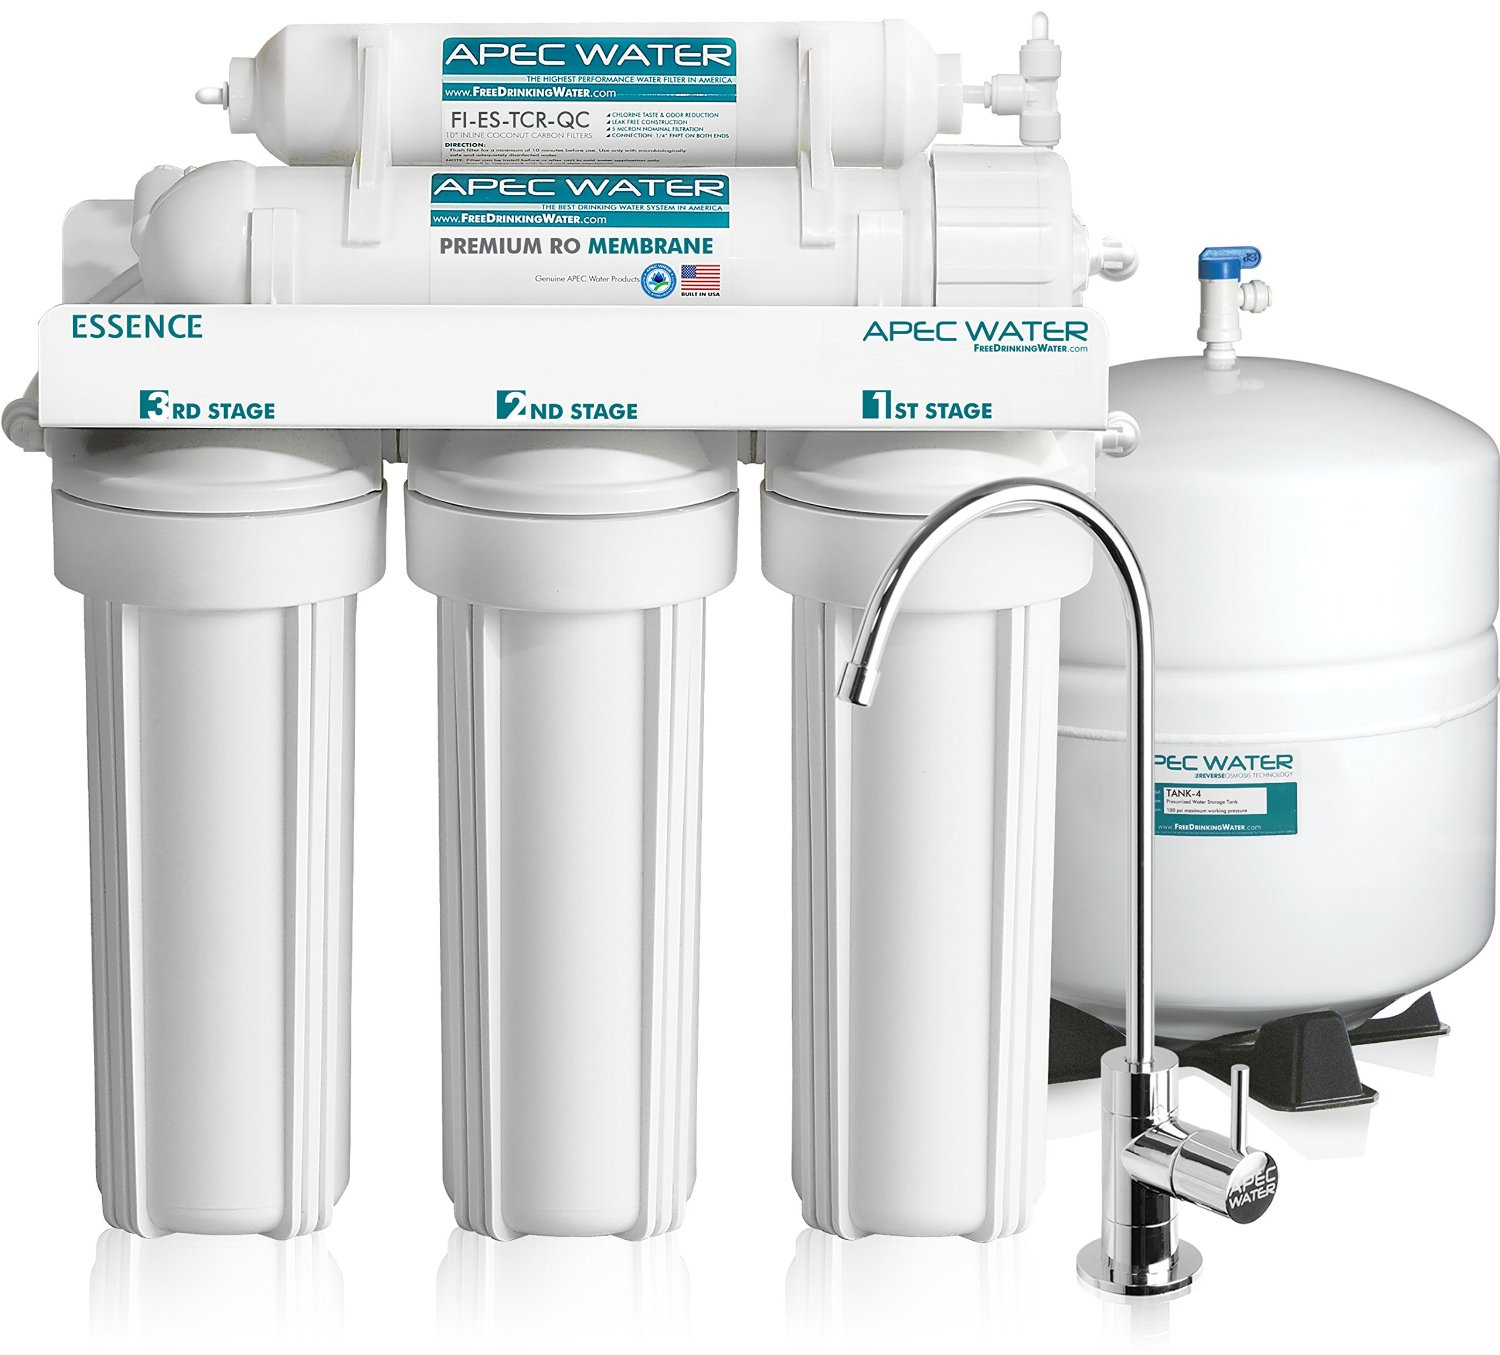 Home Water Filtration Systems Comparison Best Whole House Water Filter System Review 2017 Water Browser